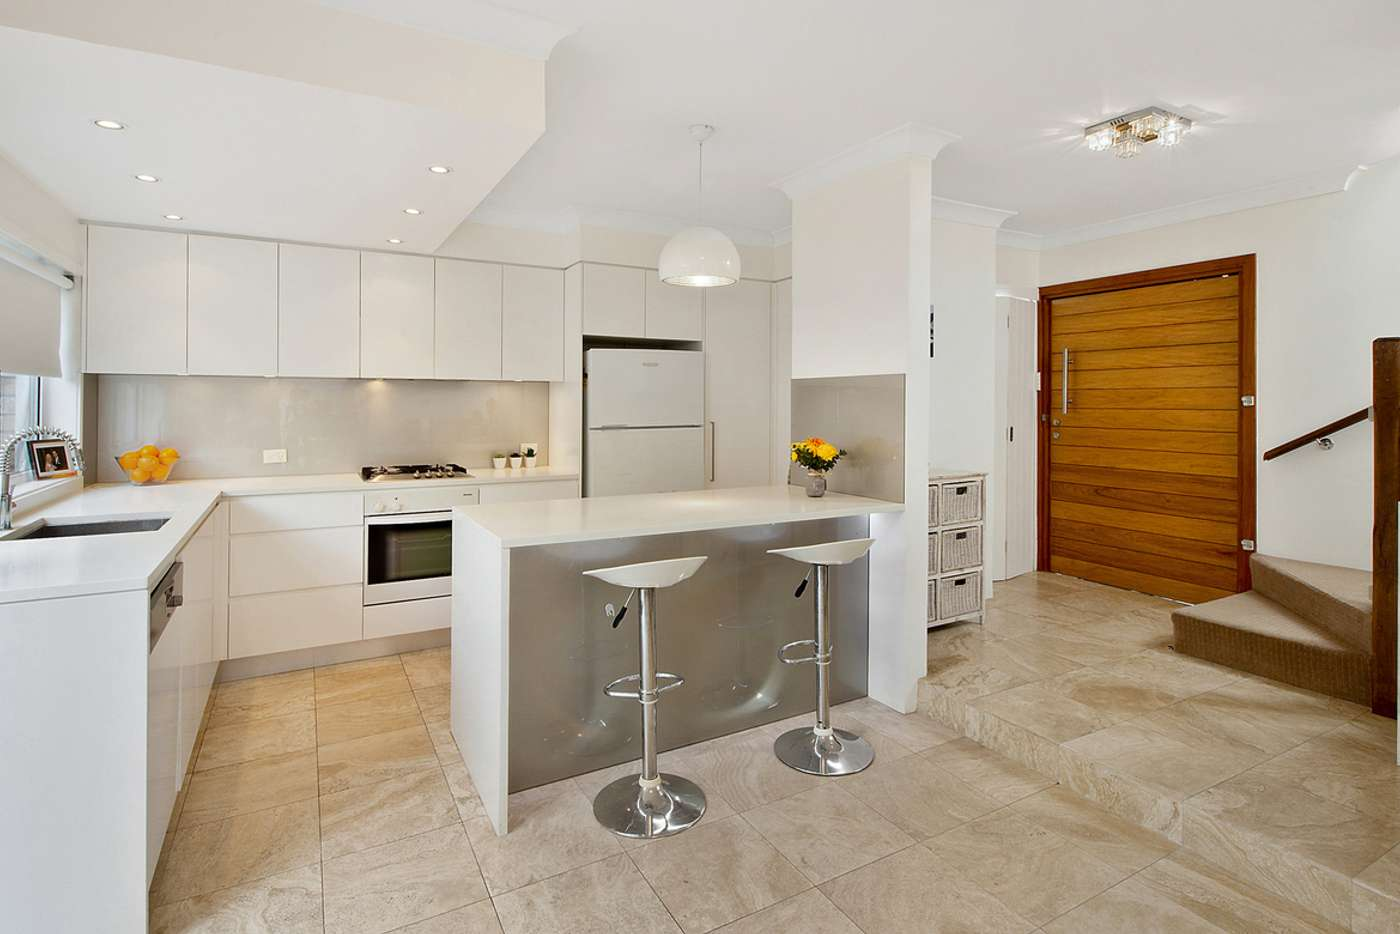 Main view of Homely townhouse listing, 2/205 Woodland Street, Balgowlah NSW 2093